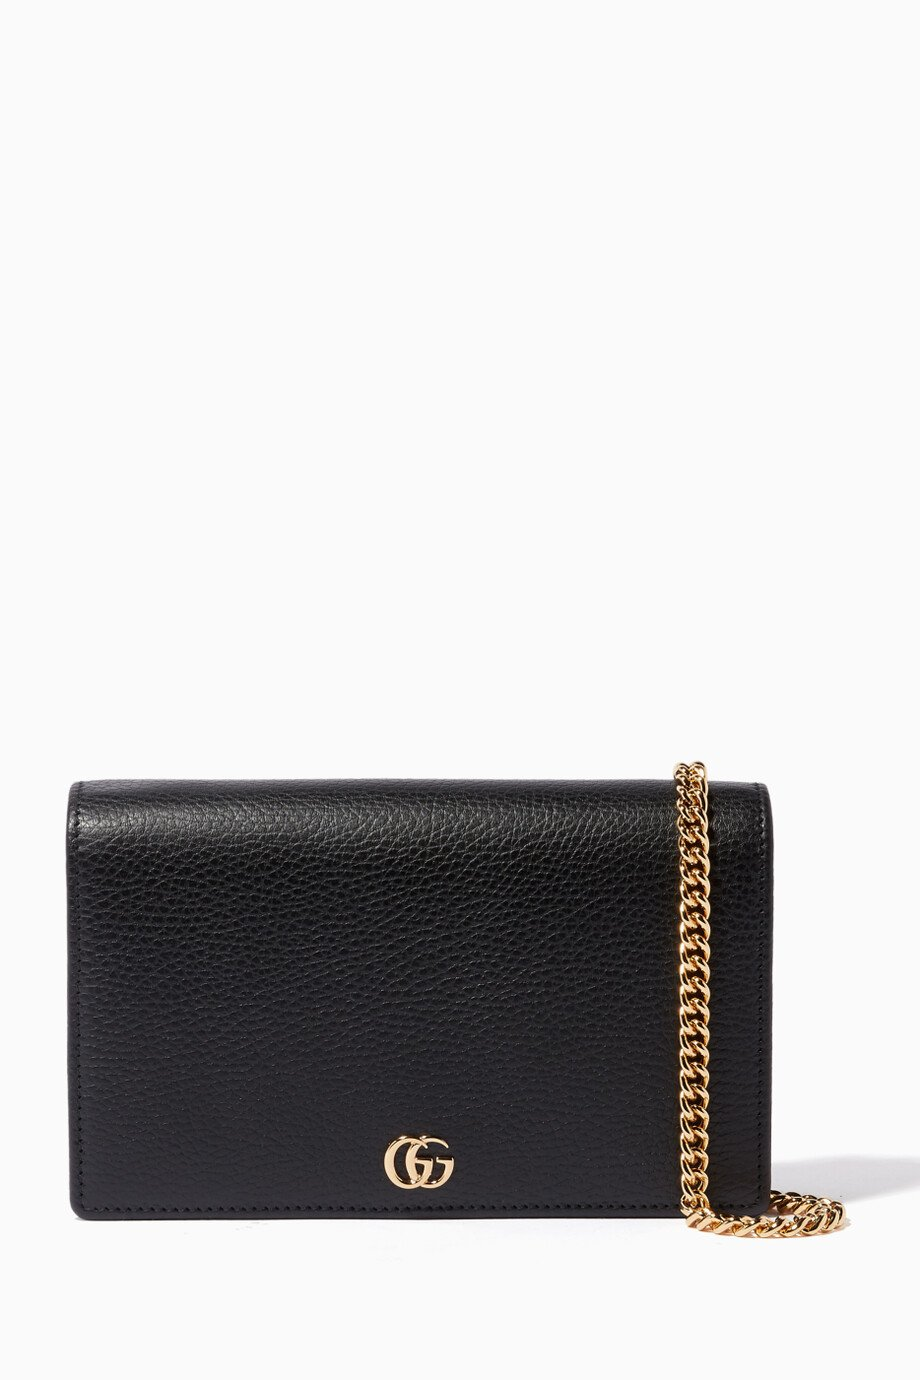 aa09d3b13d0b Shop Gucci Black Black Marmont Leather Chain Wallet for Women ...